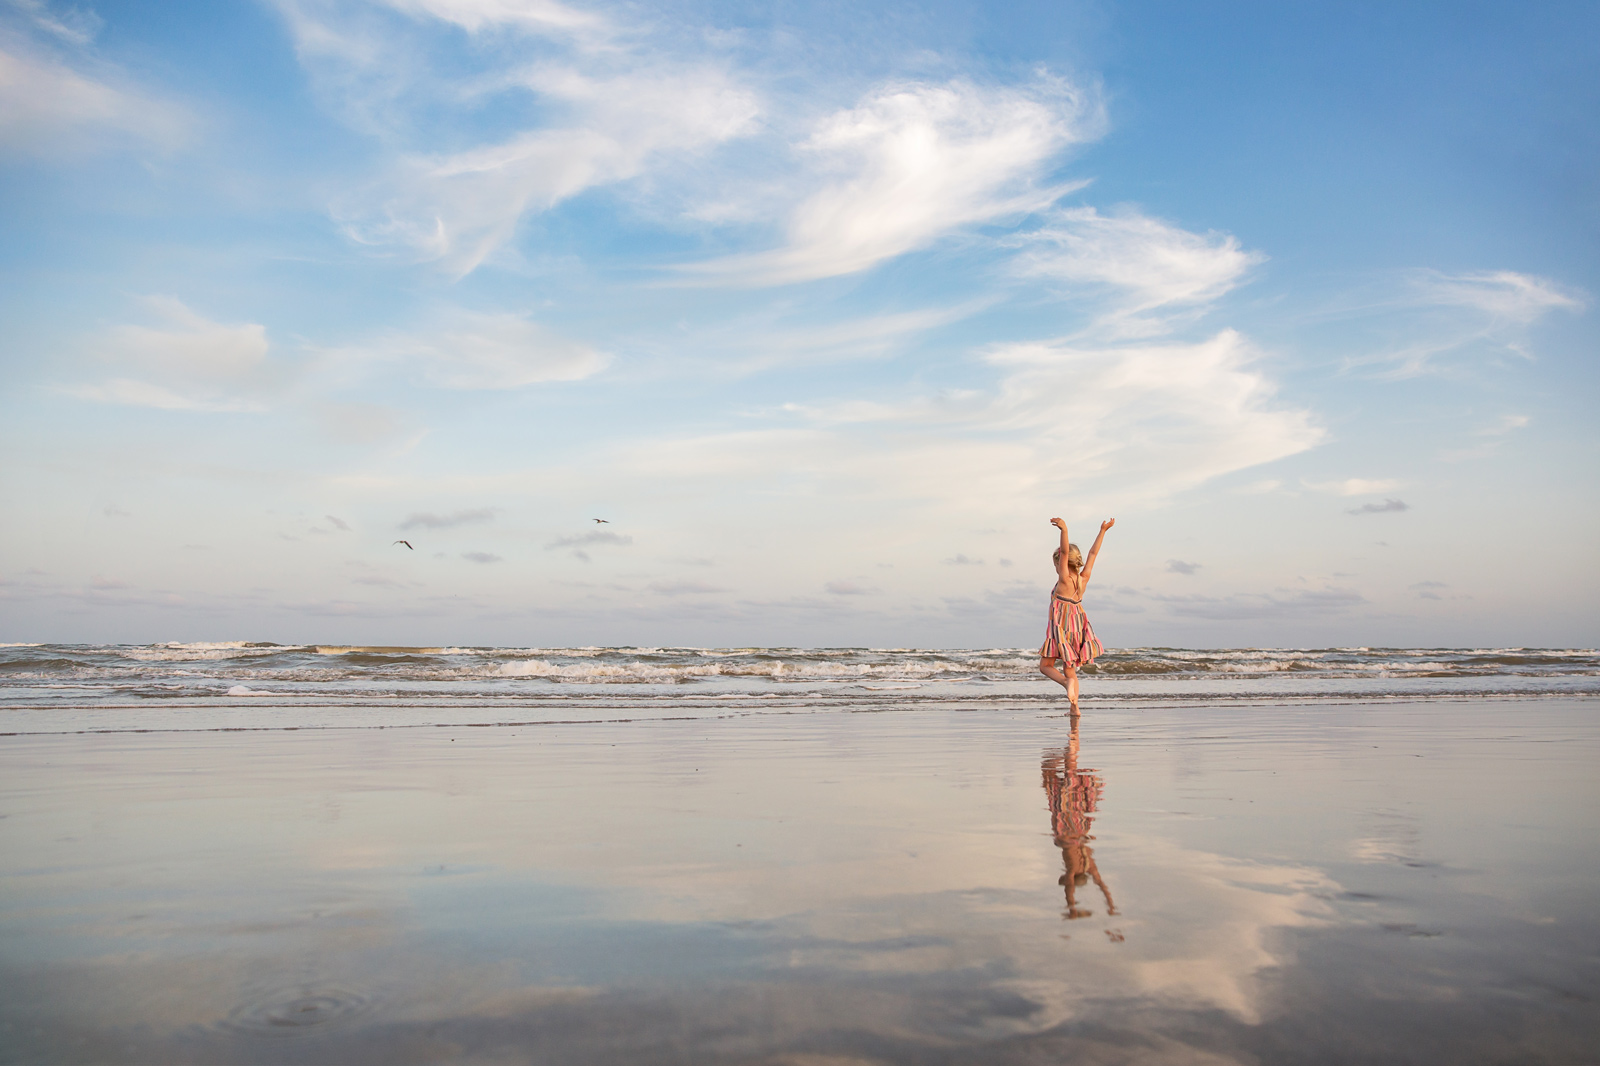 Girl dancing at beach with dramatic sky behind her